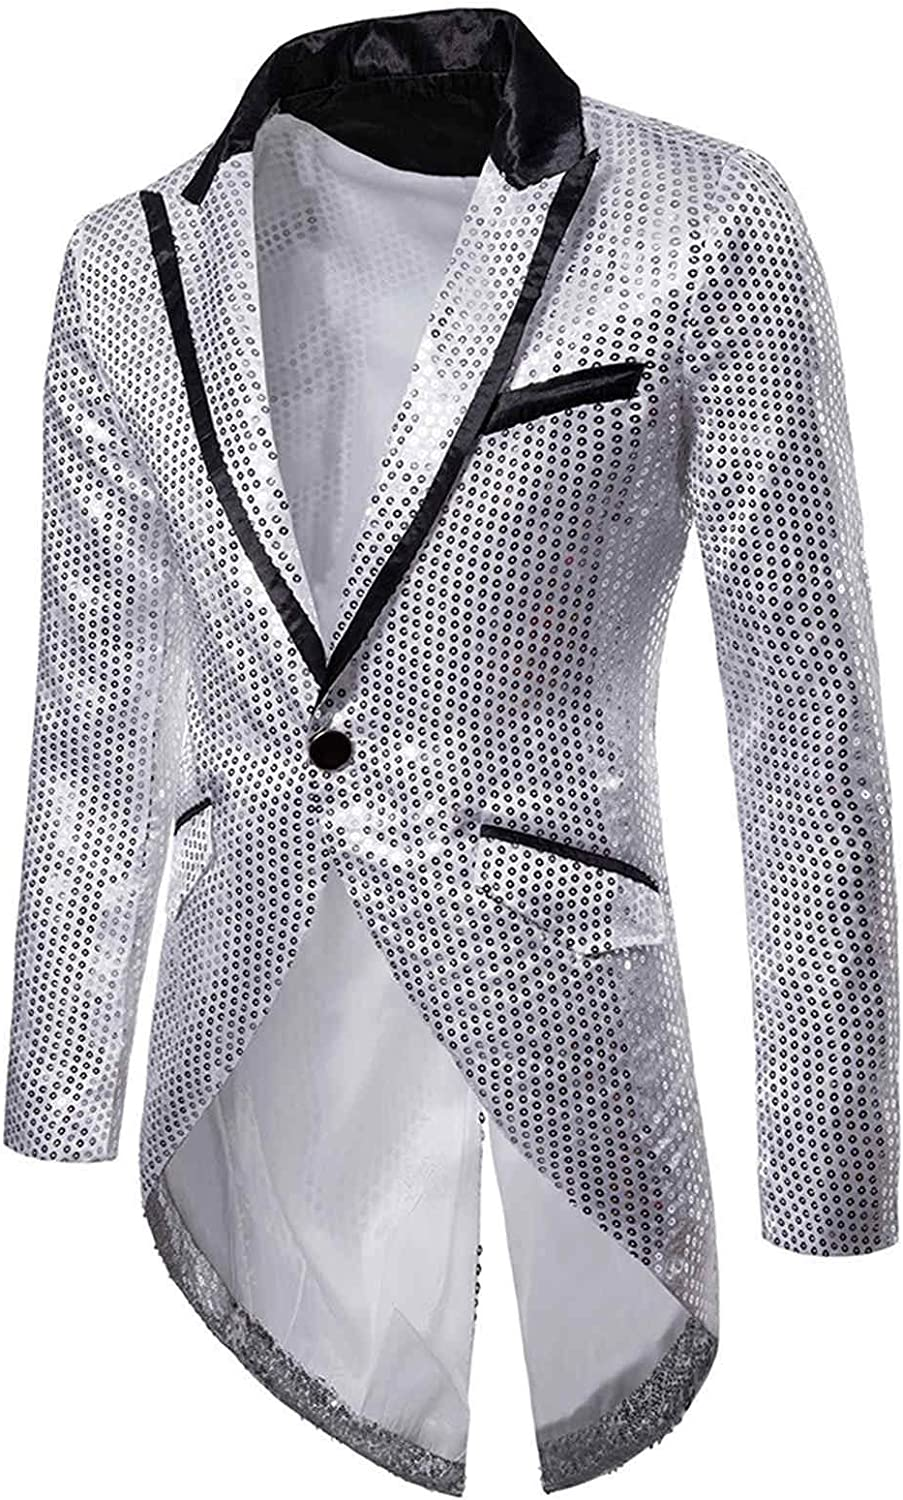 Men's Max 65% OFF Fashion One Button Sequin Party Many popular brands Jacket Suit Dinne Weddings